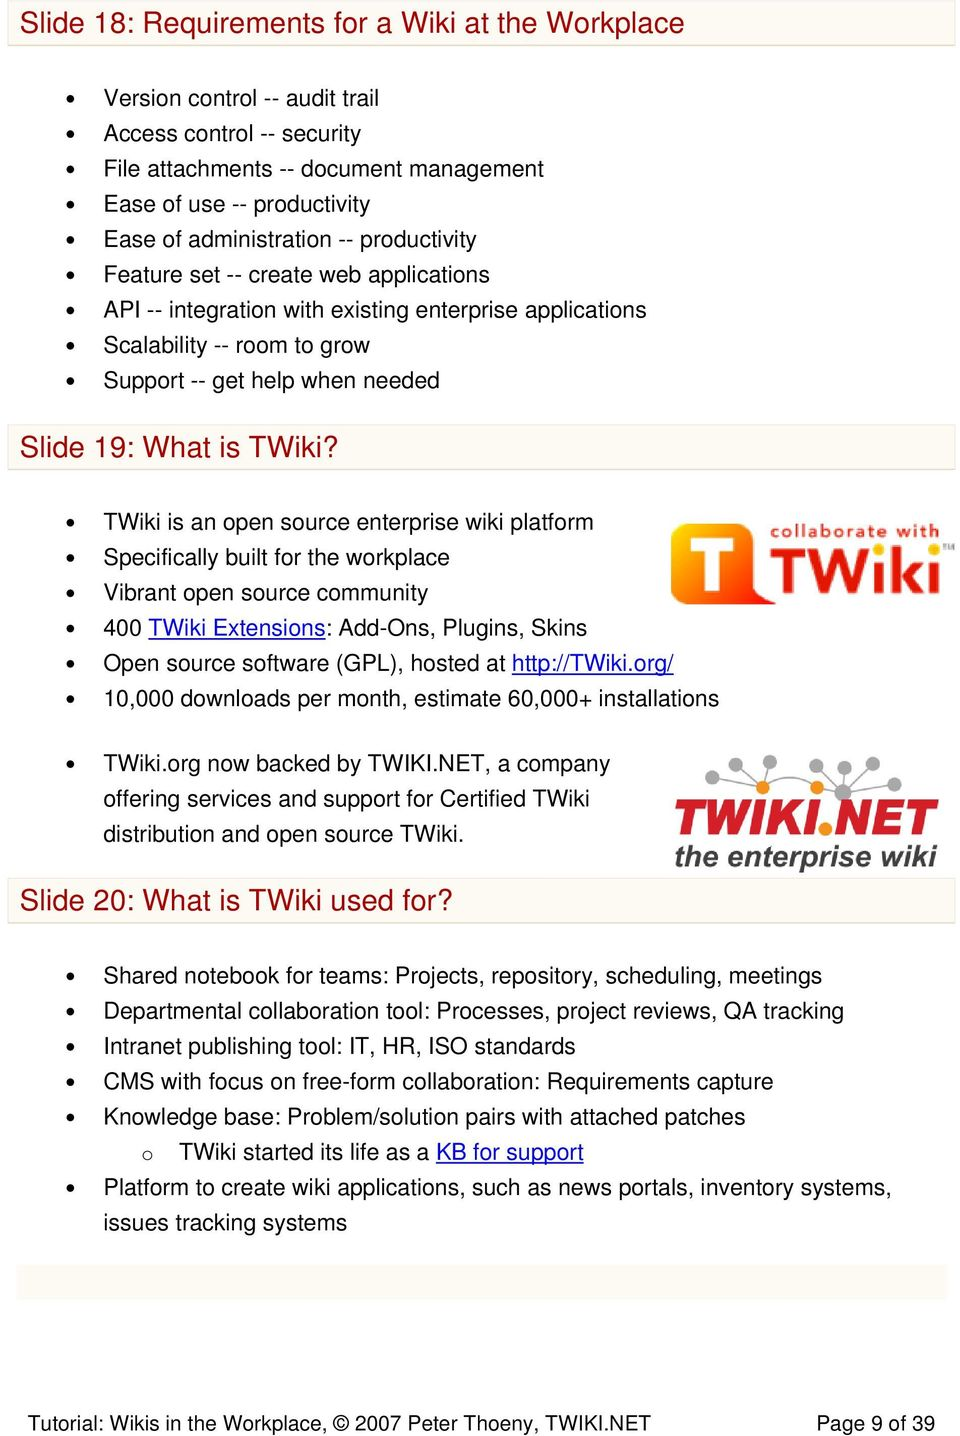 TWiki is an open source enterprise wiki platform Specifically built for the workplace Vibrant open source community 400 TWiki Extensions: Add-Ons, Plugins, Skins Open source software (GPL), hosted at